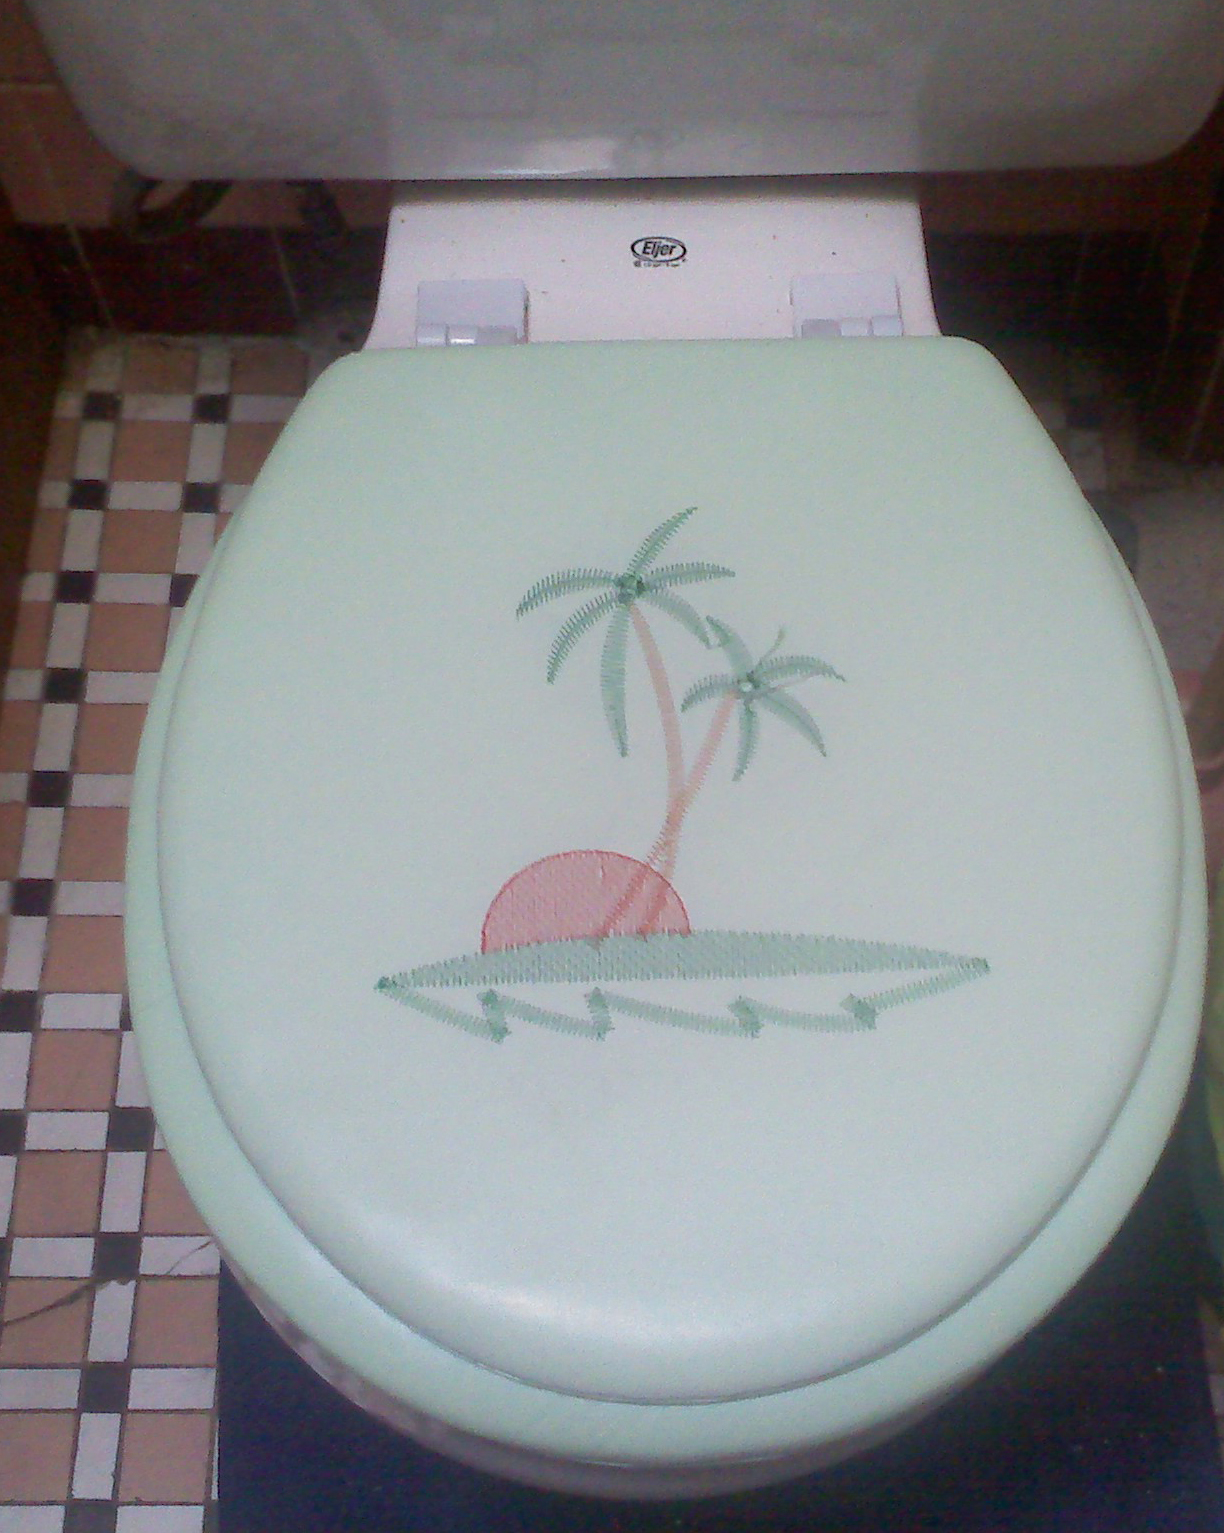 Home Depot Toilet Seats | Cushioned Toilet Seats | Roho Toilet Seat Cushion